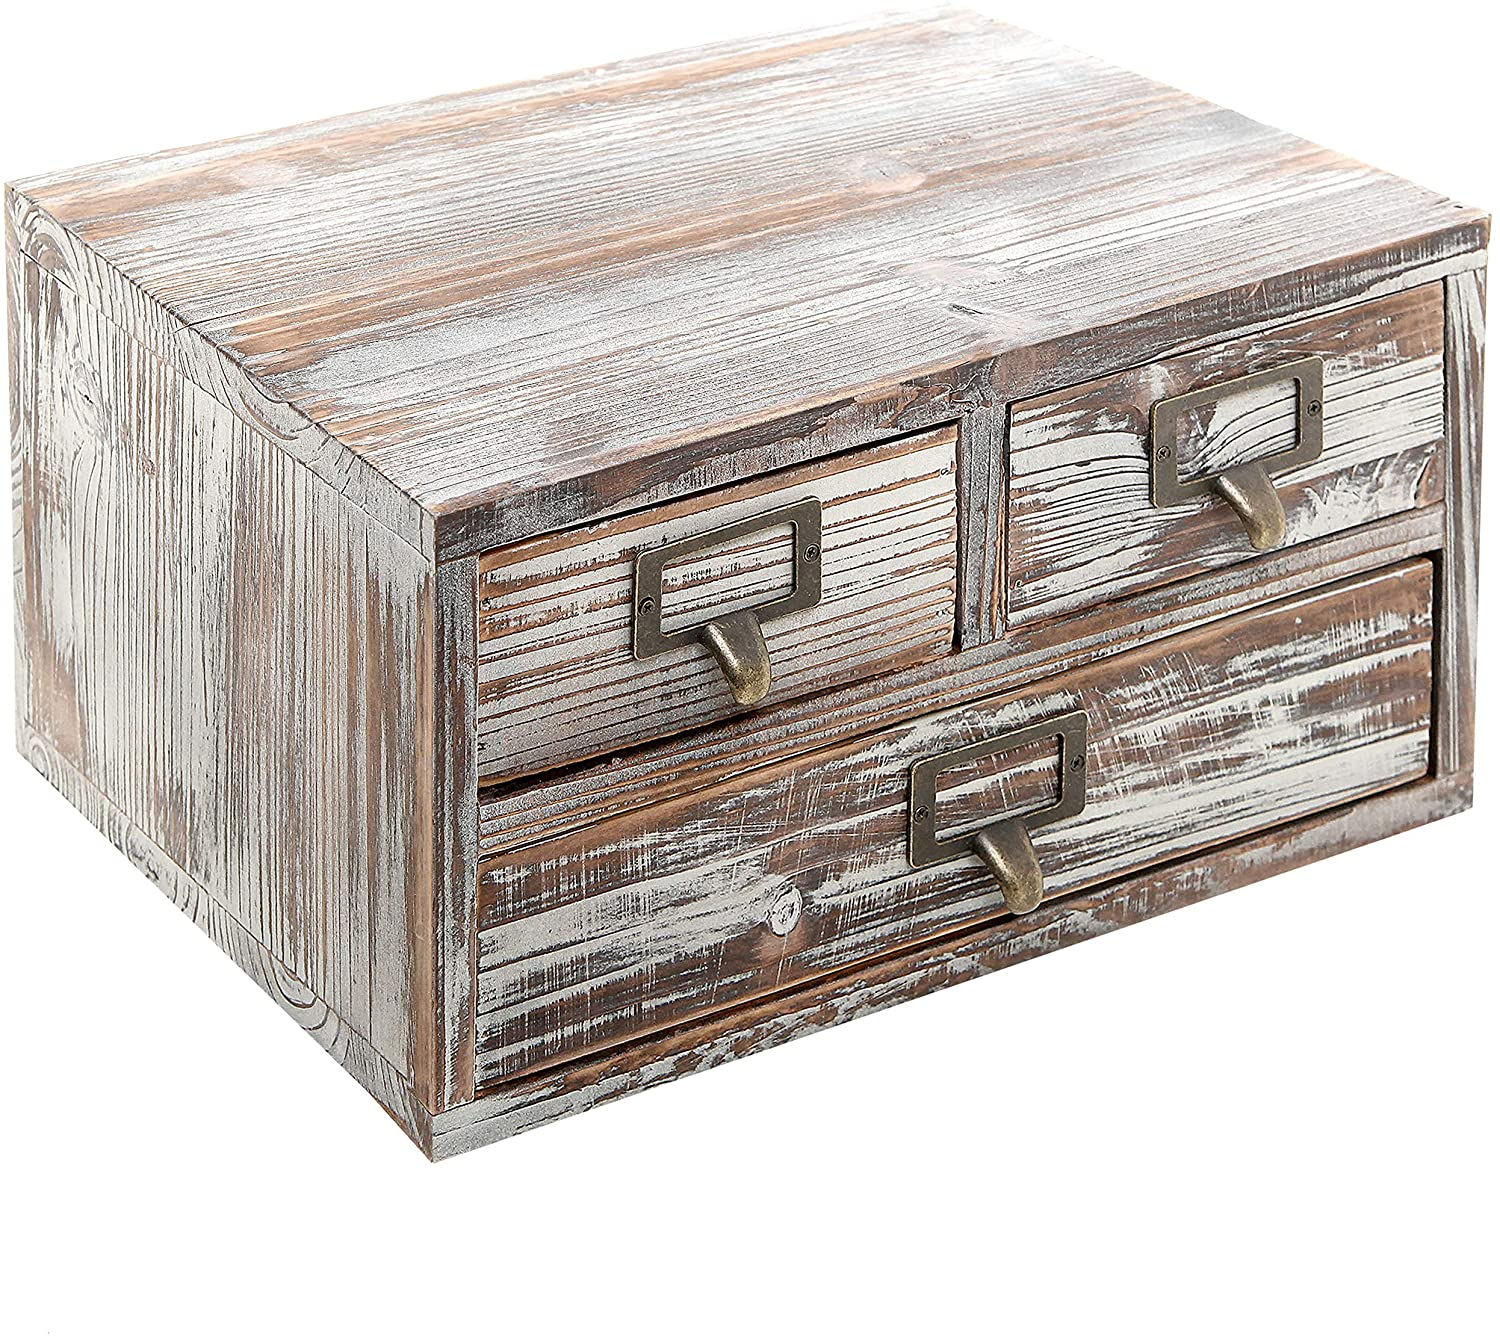 MyGift Rustic Torched Finish Wood Office Storage Cabinet/Jewelry Organizer w/ 3 Drawers, Ash Brown